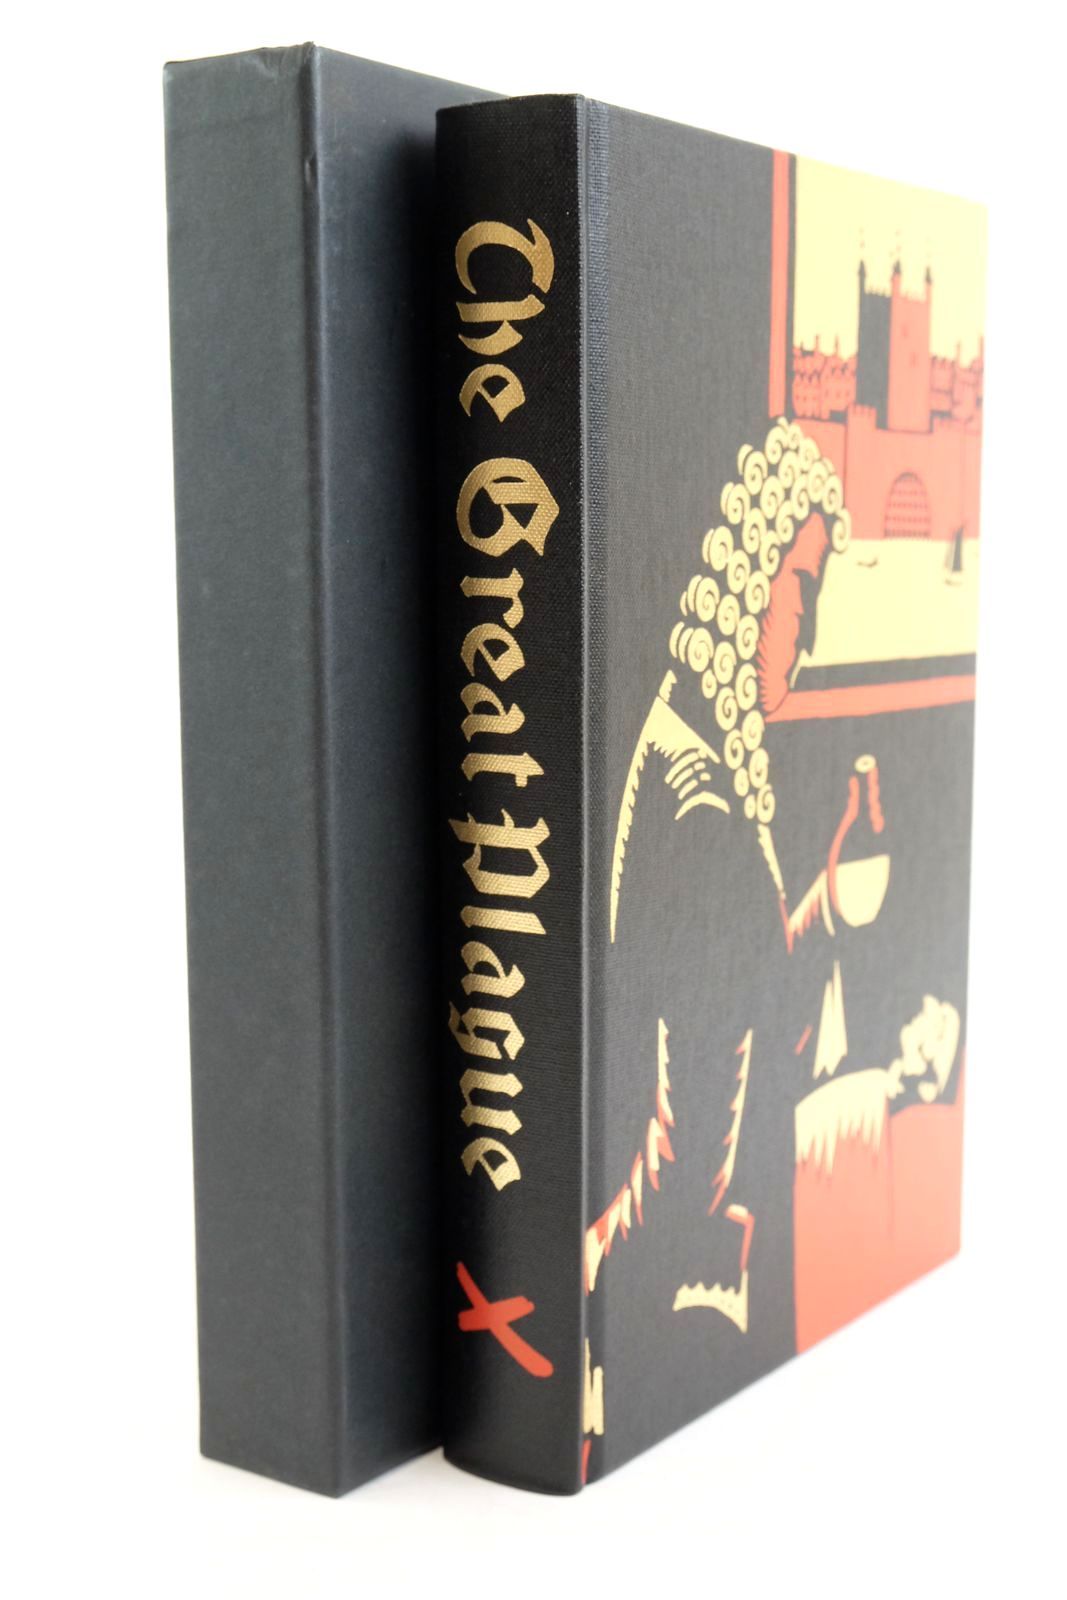 Photo of THE GREAT PLAGUE IN LONDON written by Bell, Walter George Hollyer, Belinda published by Folio Society (STOCK CODE: 1321019)  for sale by Stella & Rose's Books